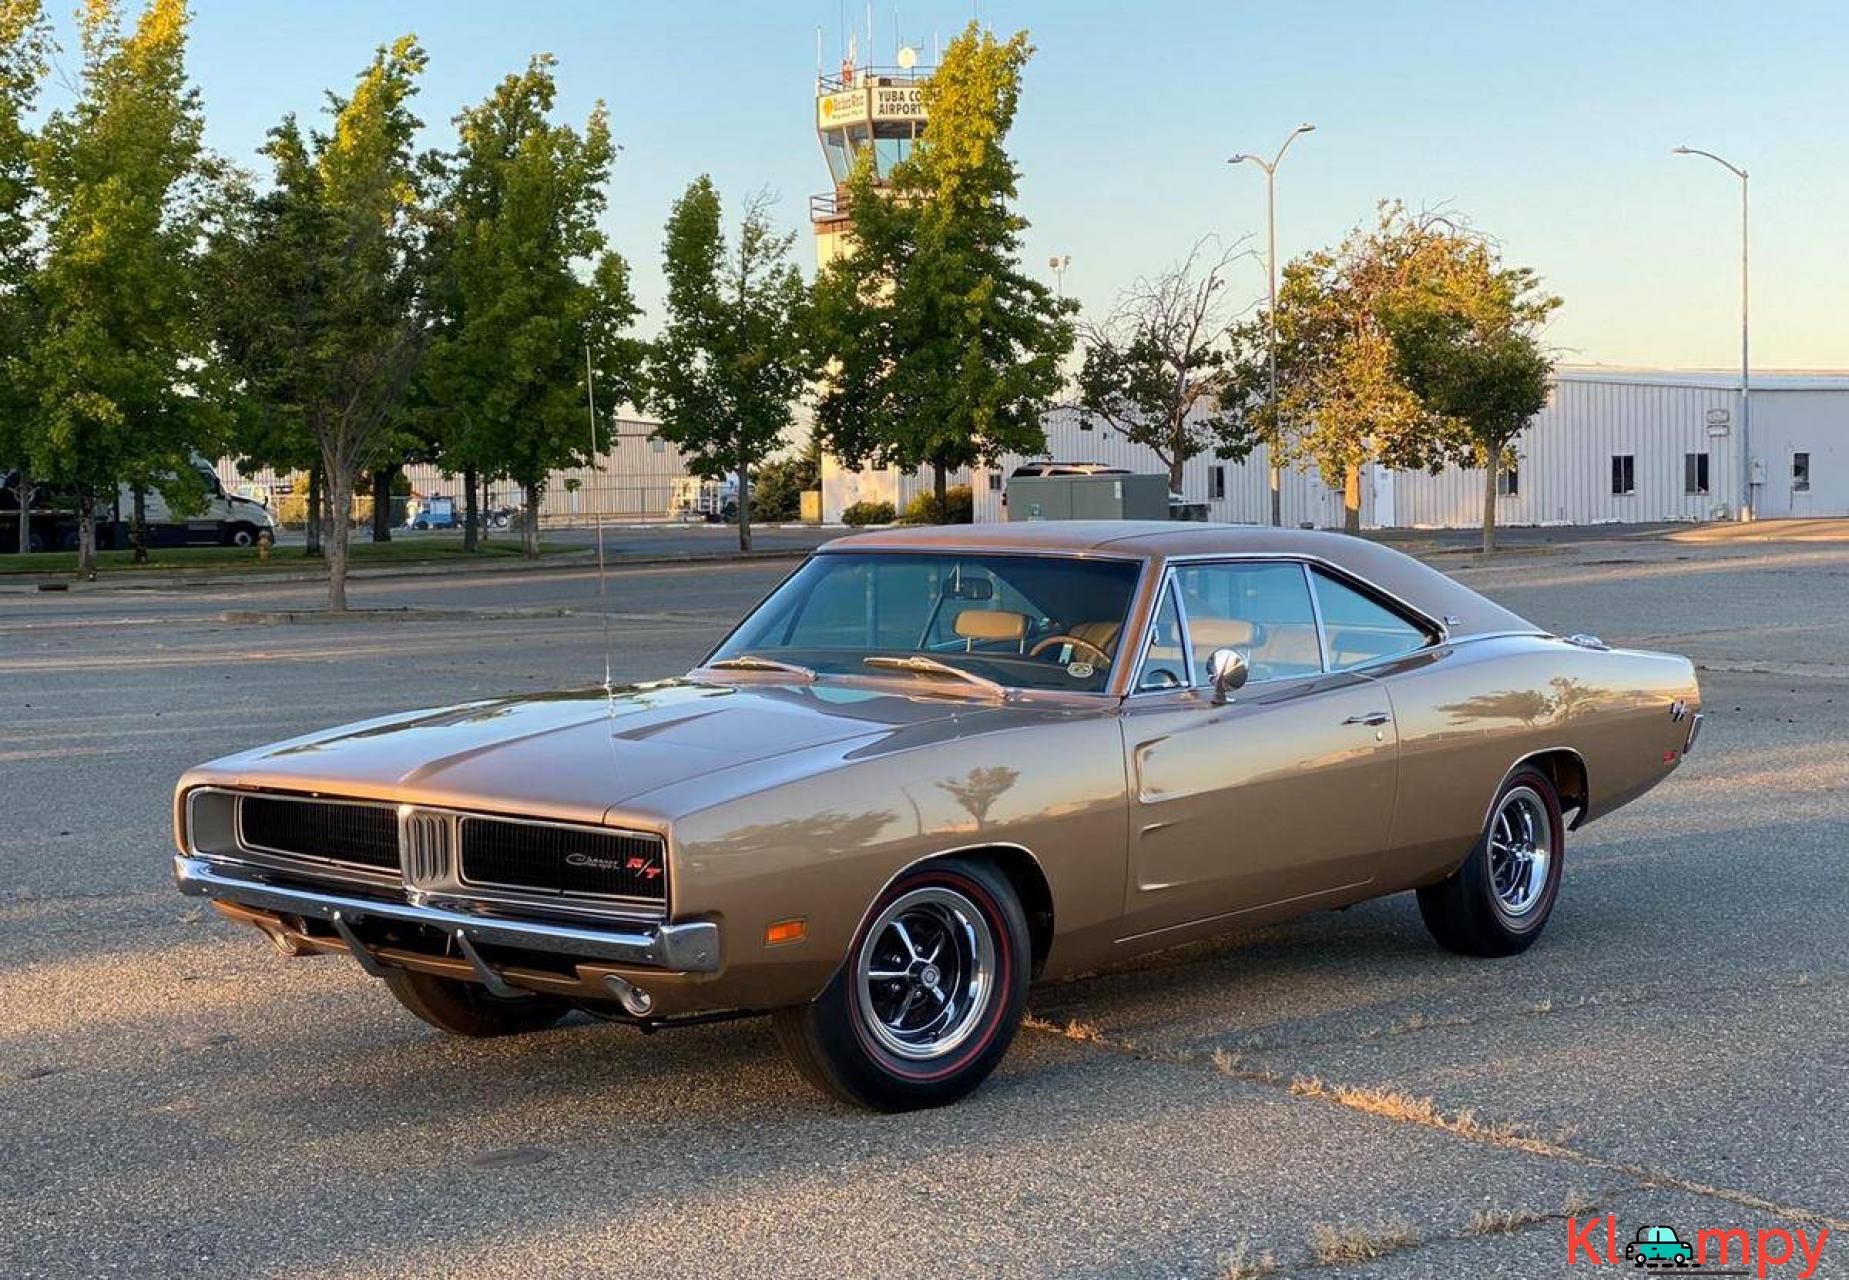 1969 Dodge Charger RT SE 440 375hp High Performance - 1/20